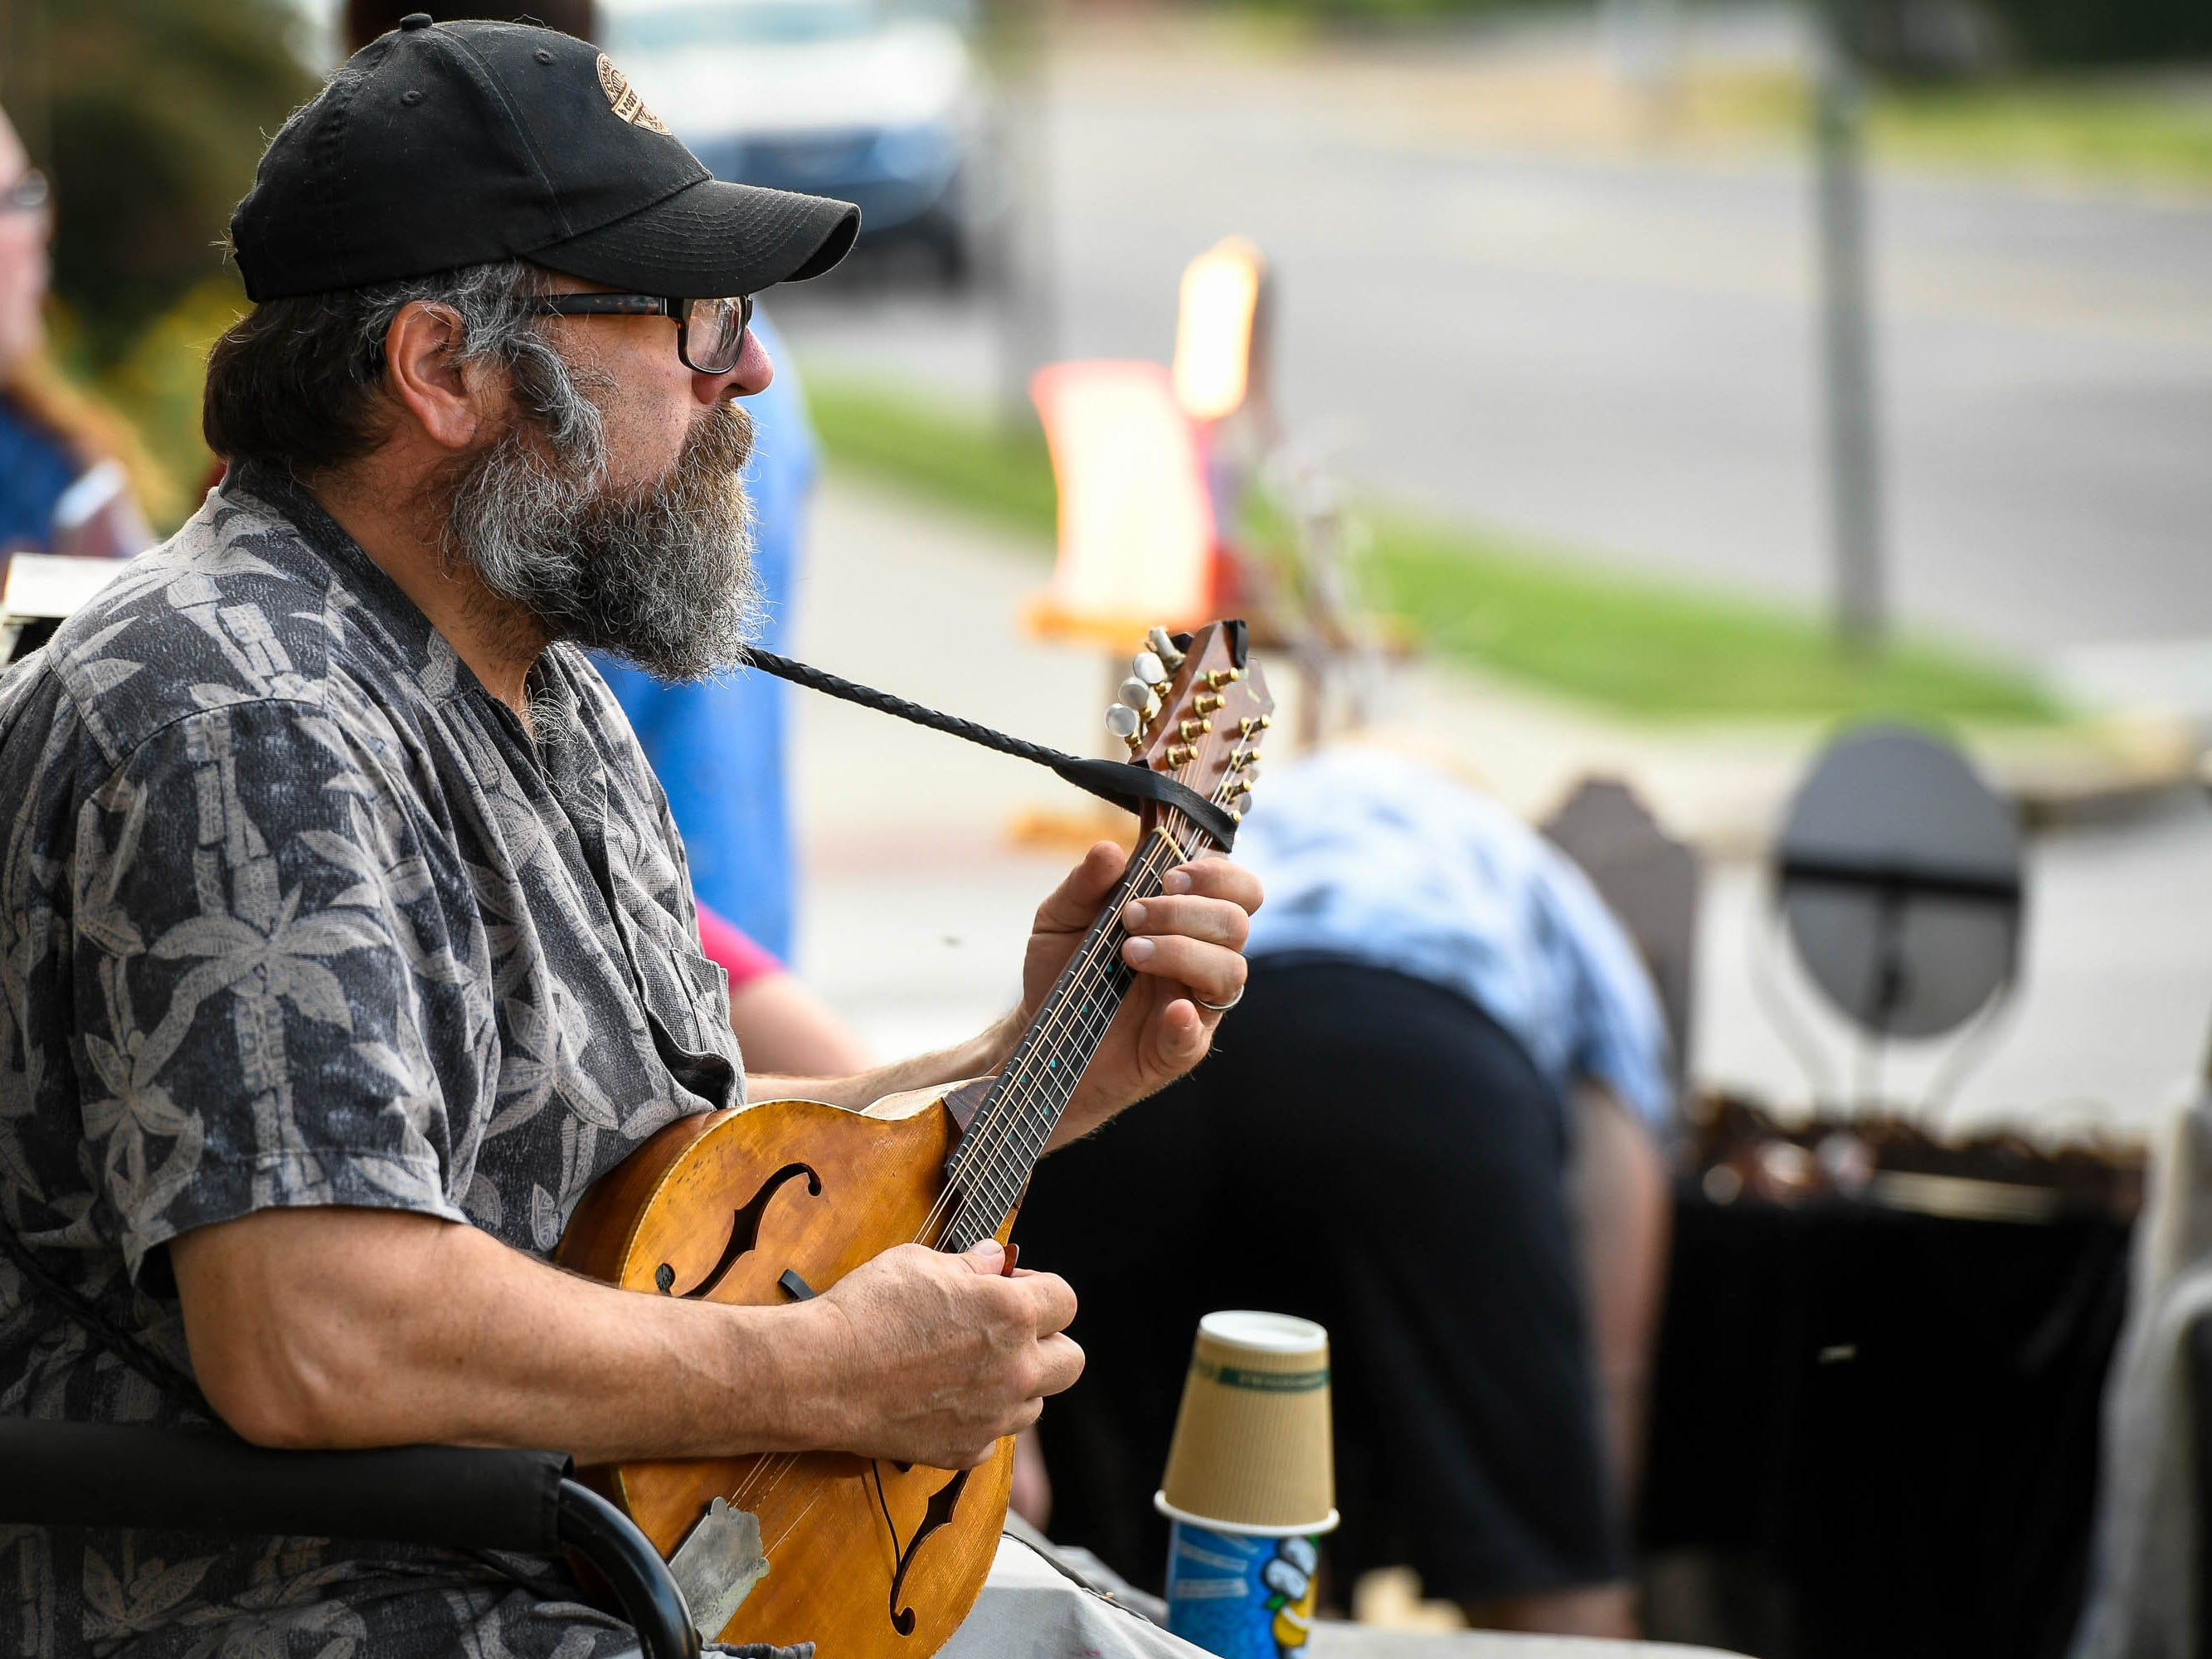 Tim Piazza plays the mandolin while tending his Evansville Coffee Company booth during the Haynie's Corner First Friday event in the downtown Arts District Friday, August 3, 2018.